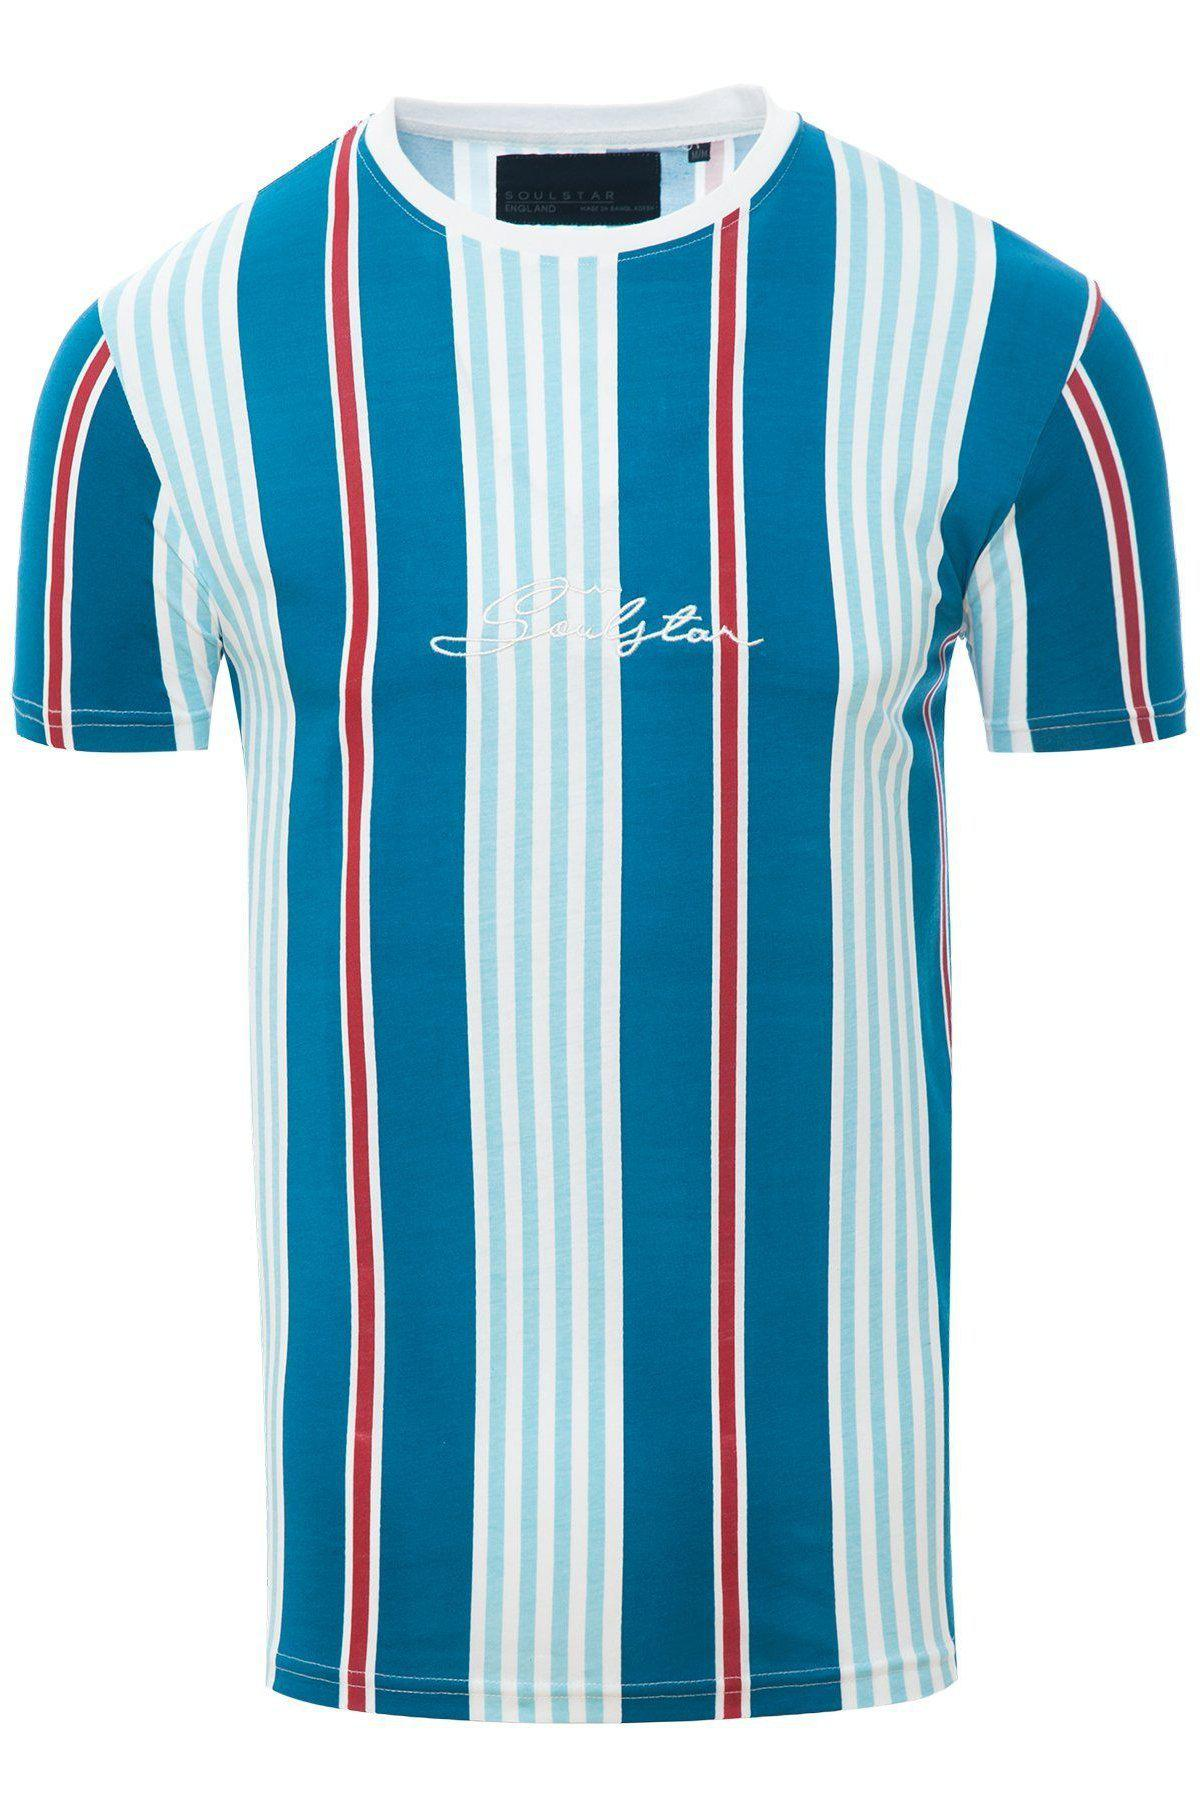 T-Shirts - 0 Stripe Signature T-Shirt Blue